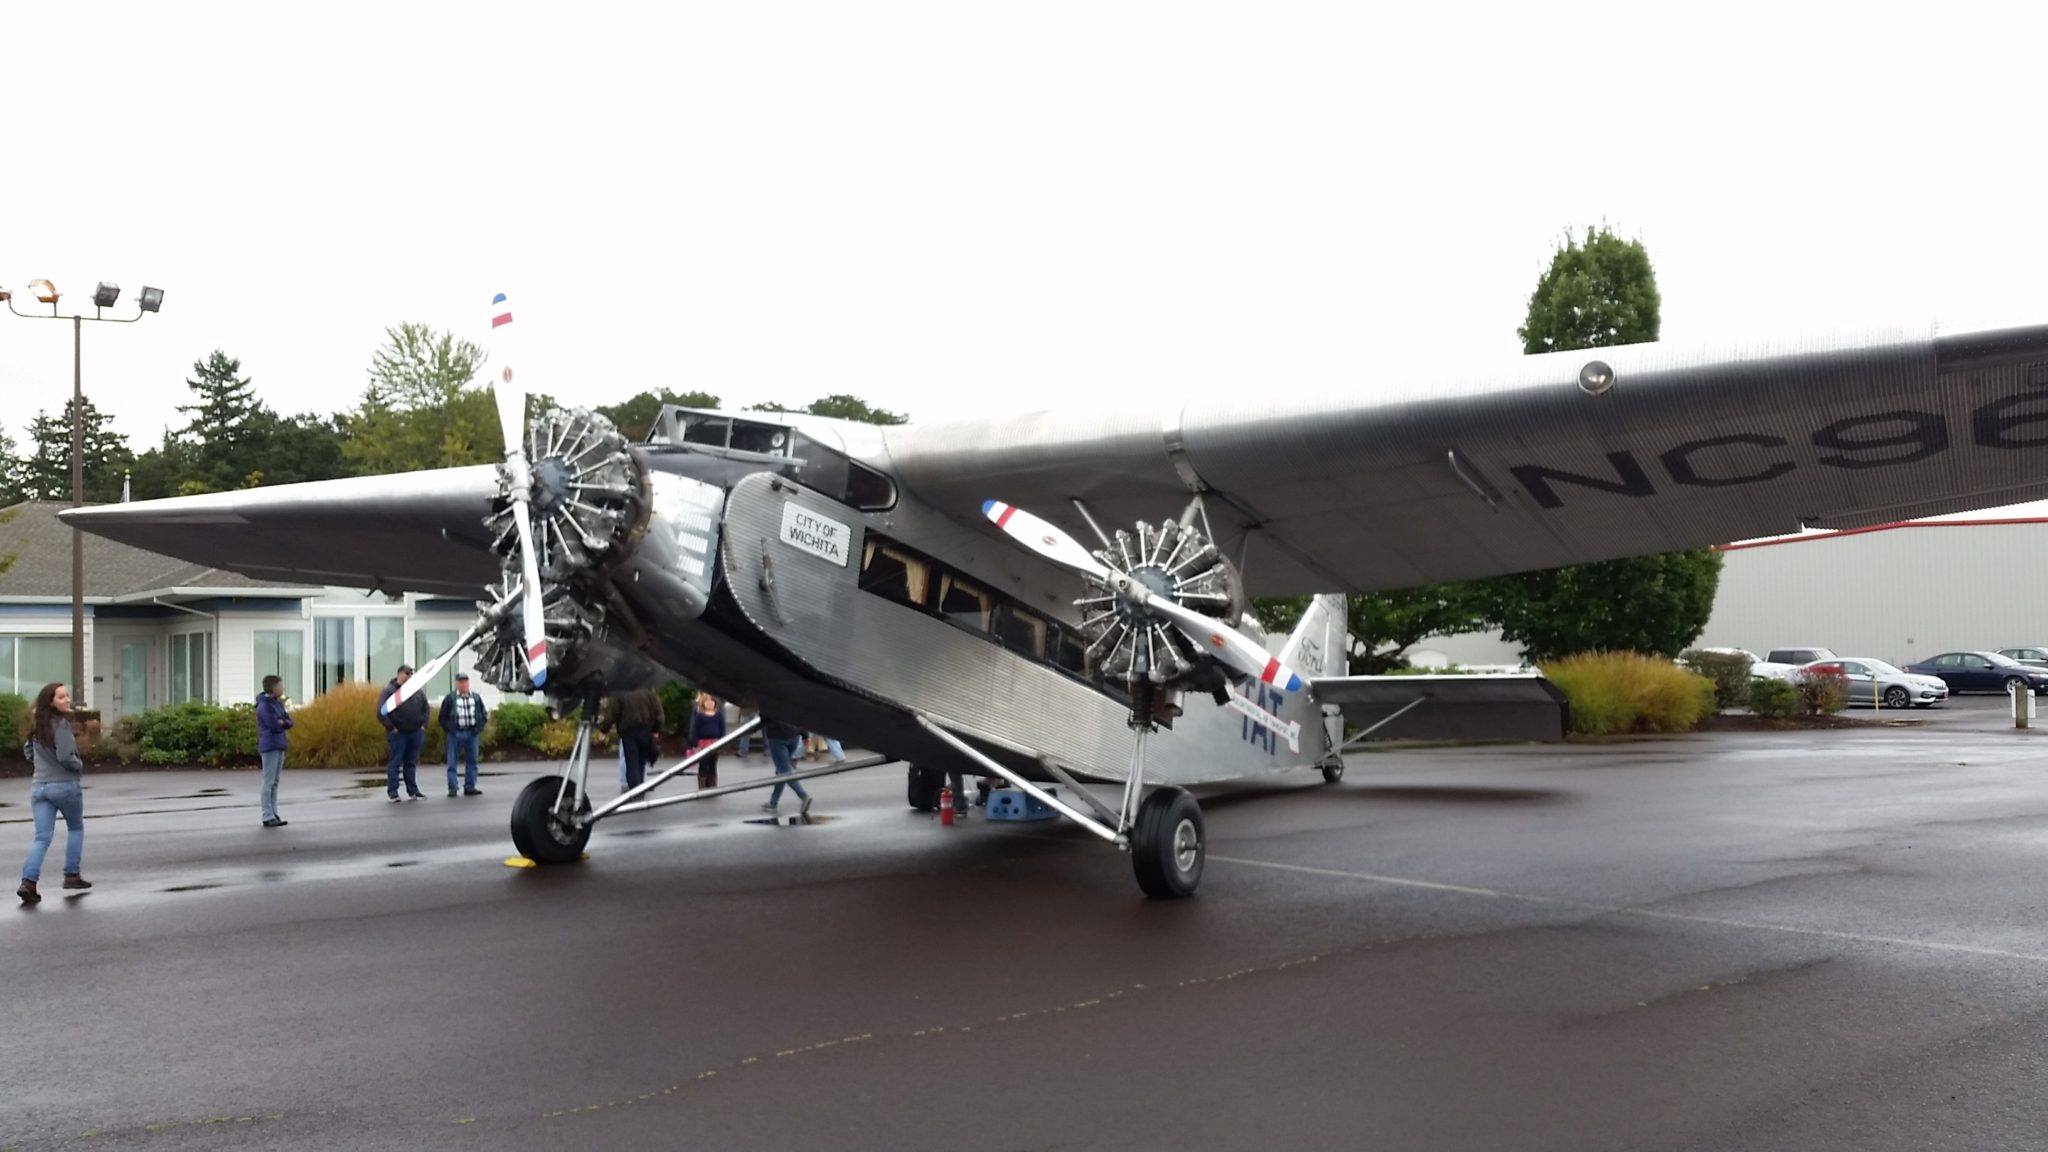 ford tri motor flying in history leeham news and comment